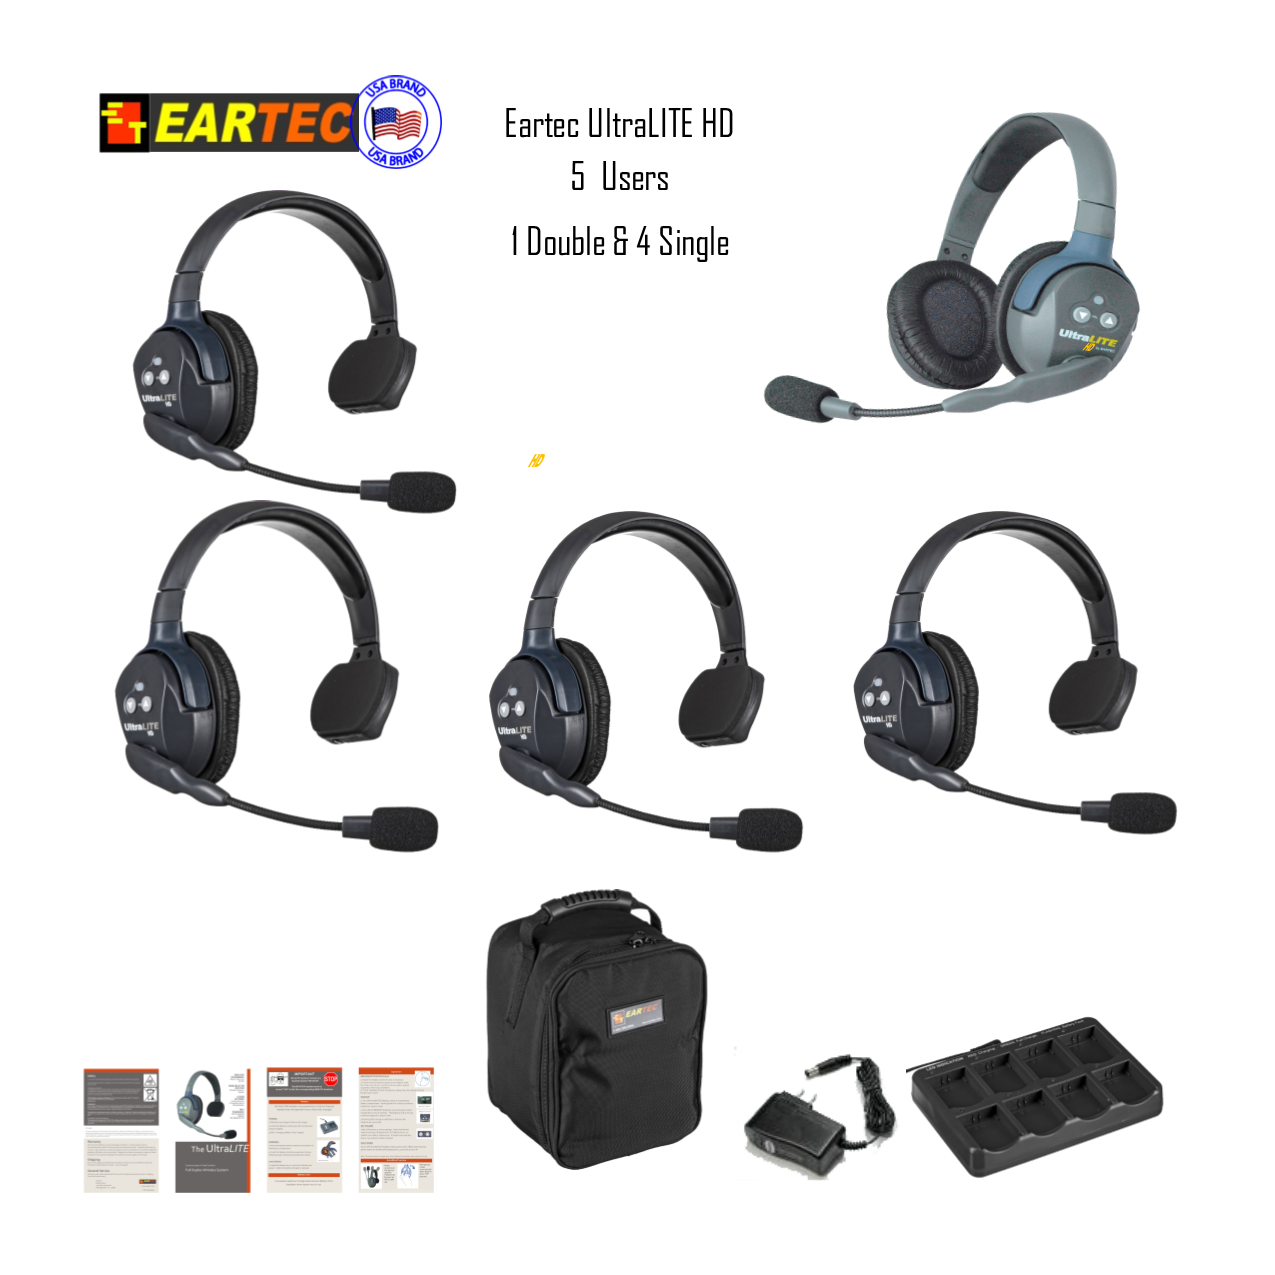 Eartec Ul541 Ultralite 5 Pers. System W/ 4 Single & 1 Double Headsets Intercom Systems Eartec